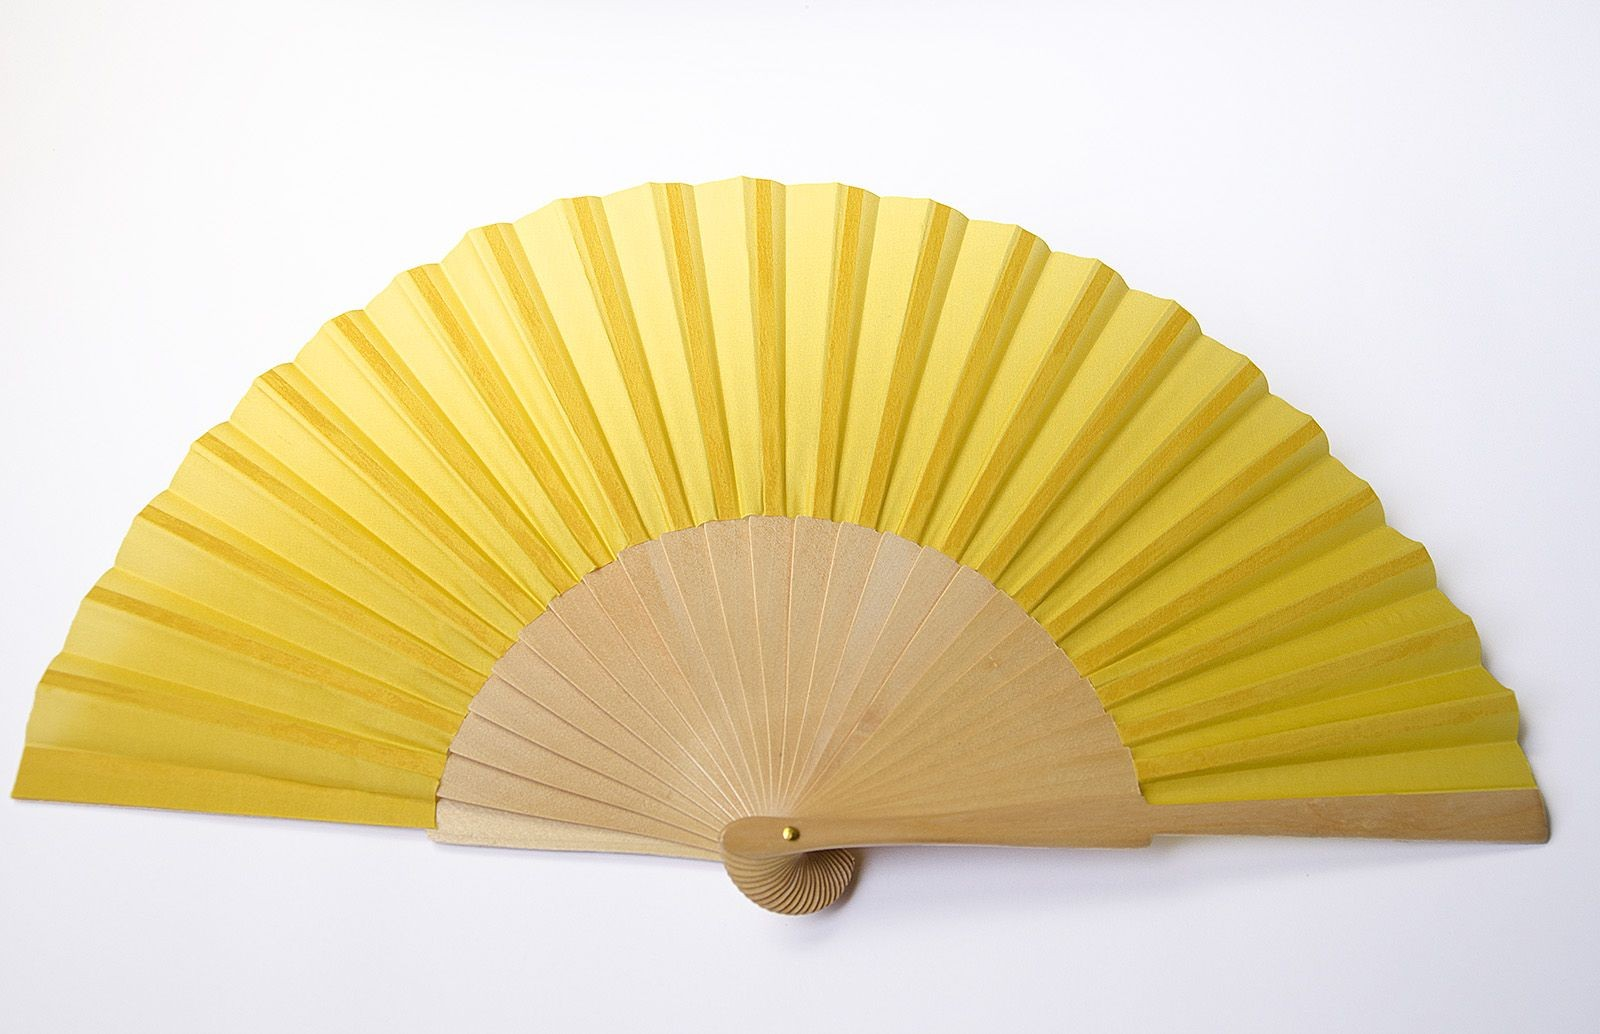 Yellow silk fan made with habotai 8 (in France also called pongé 9) and sycamore wood, ready to paint. 22 cm tall and 42 cm wide.